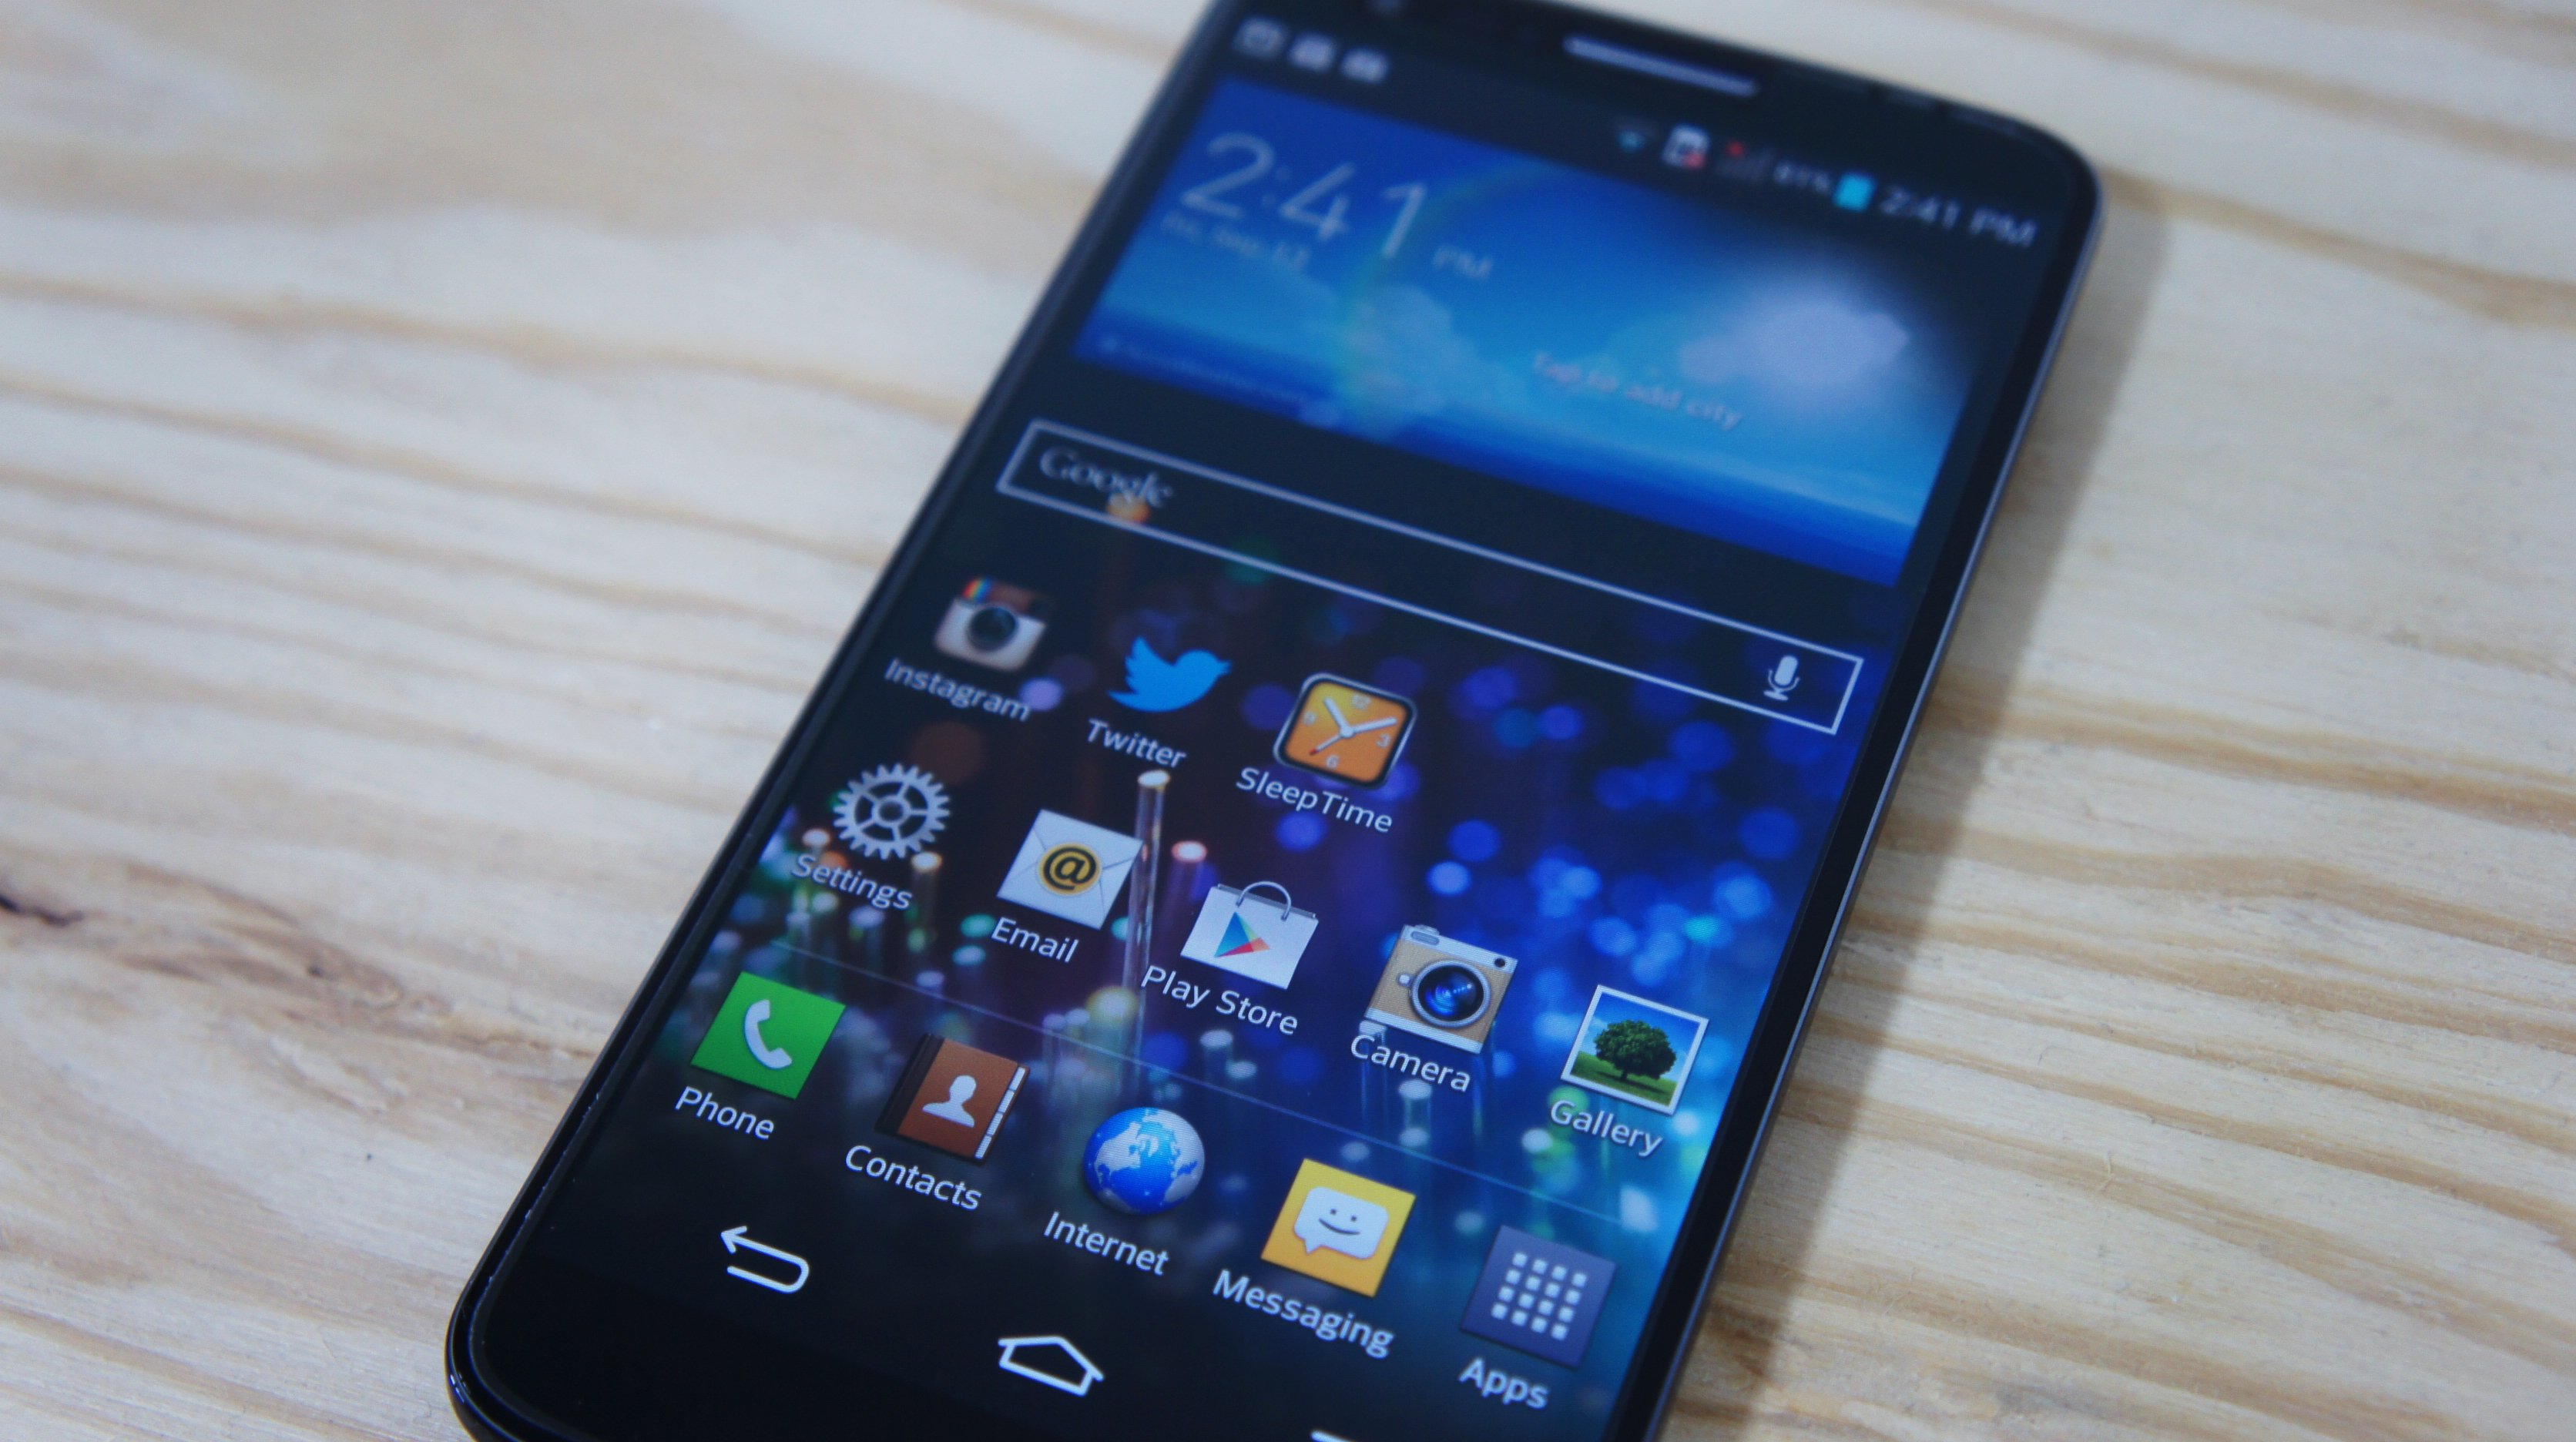 LG G2 Front